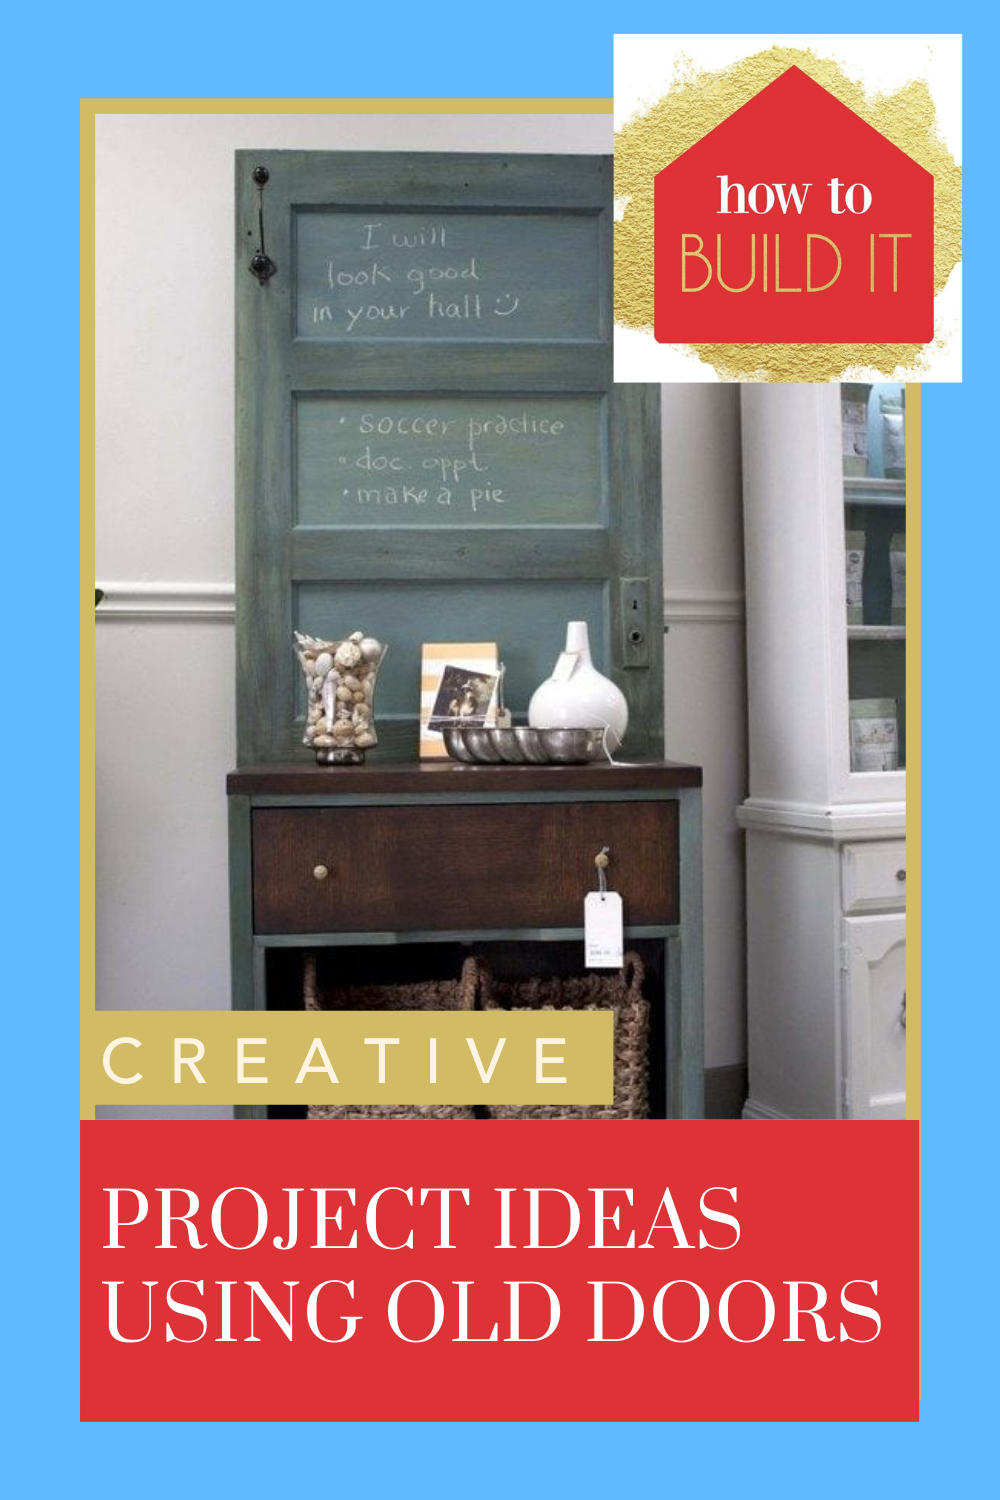 Howtobuildit.org has the best in DIY and home improvement projects! Find ways you can get busy and make something yourself. These old door upcycling projects are a great way to get started.